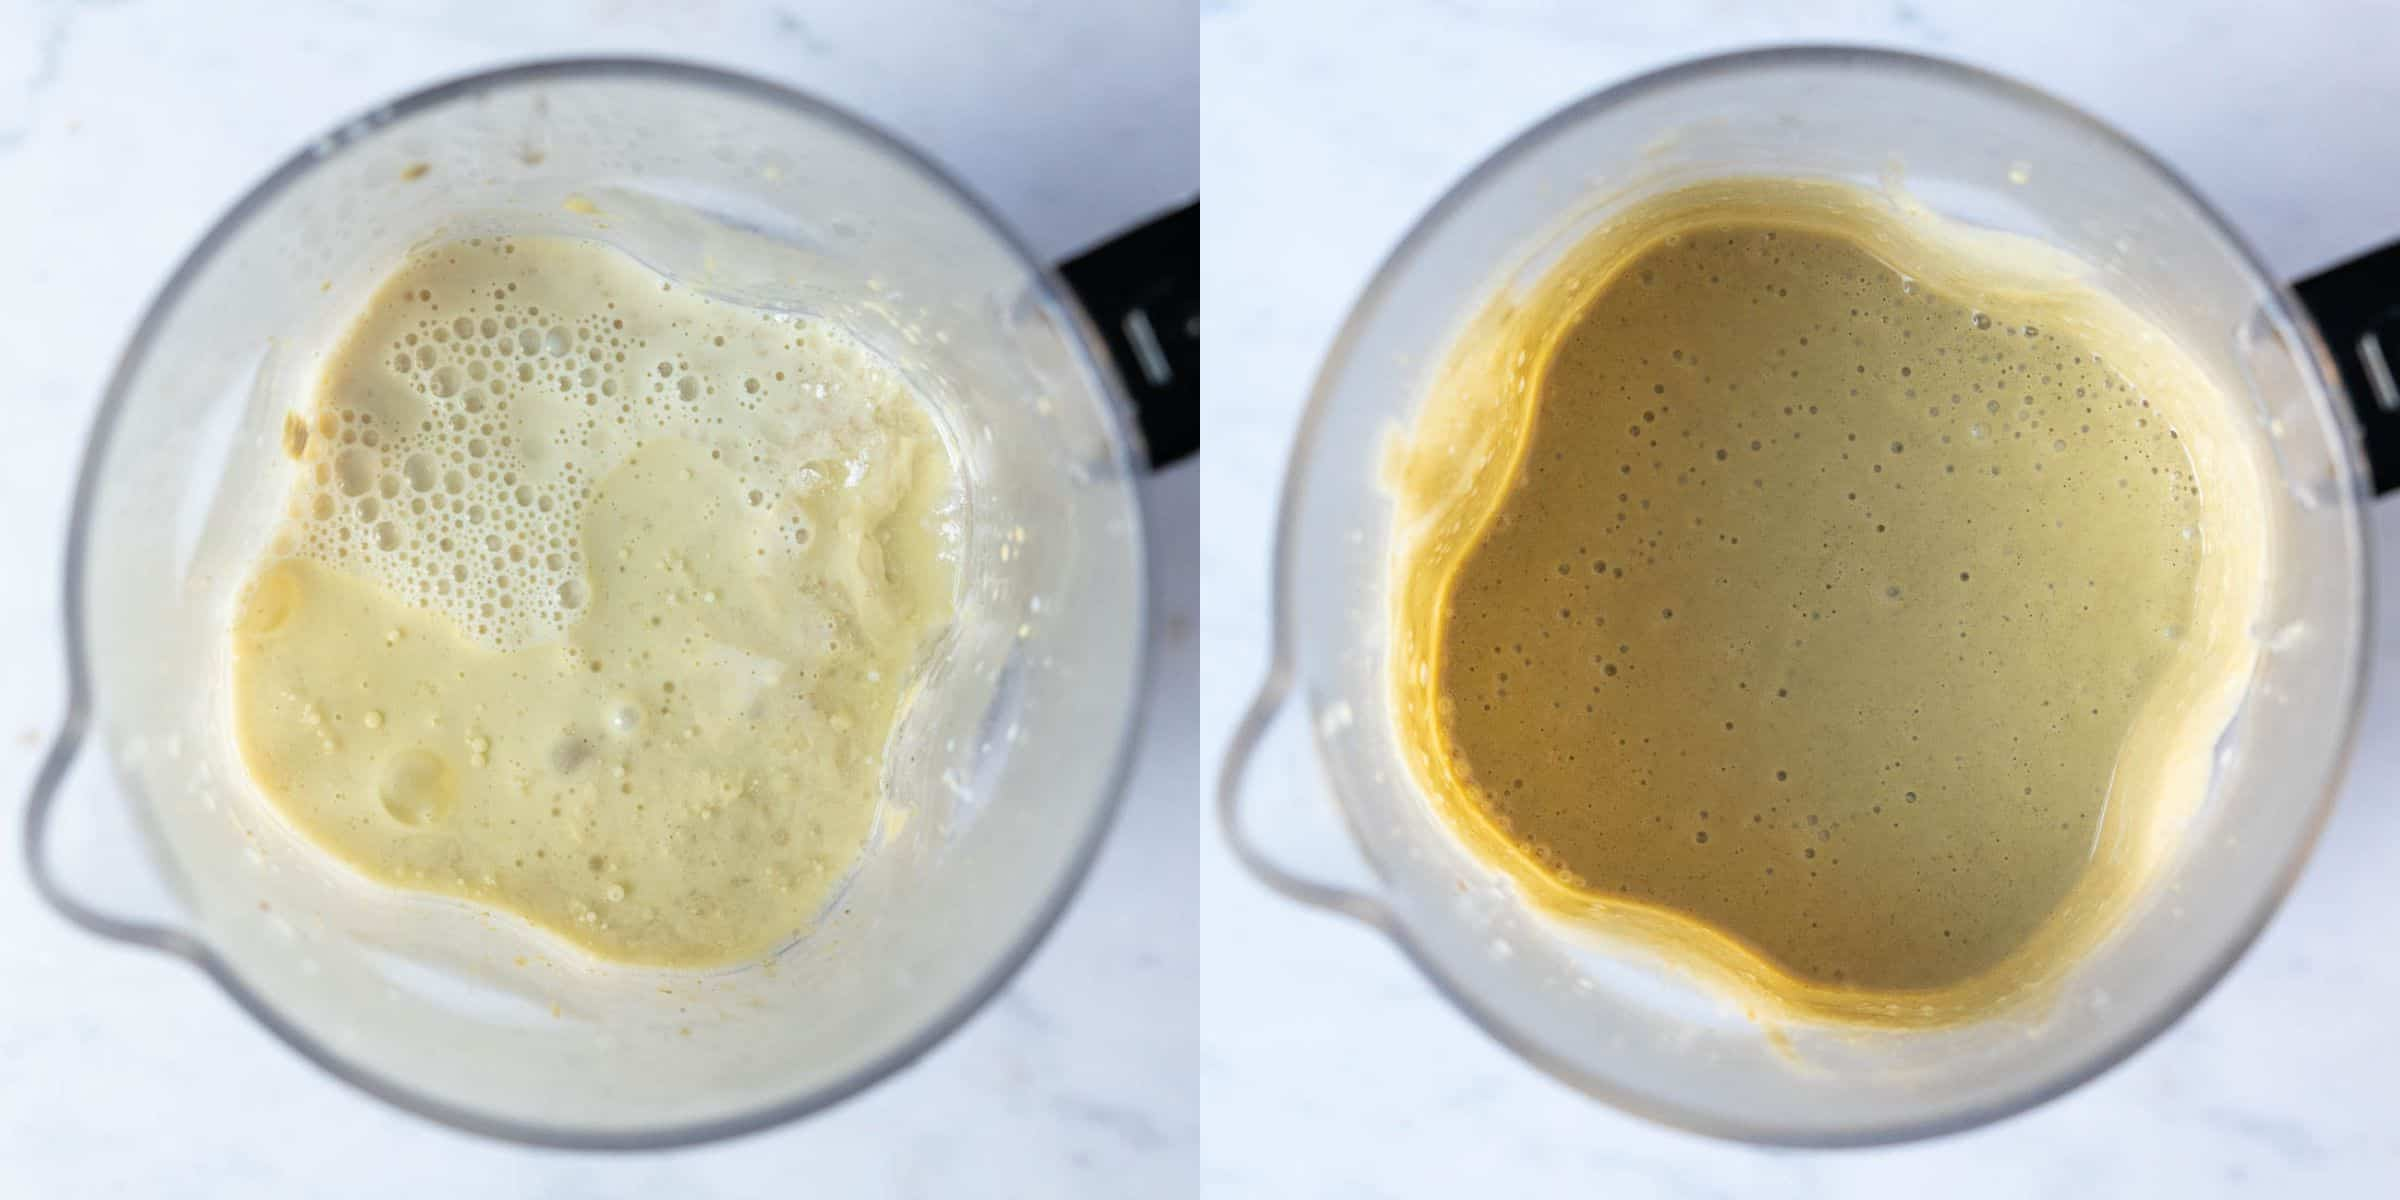 Step 3, a two image collage of adding the rest of the ingredients to the blender and blending until smooth.